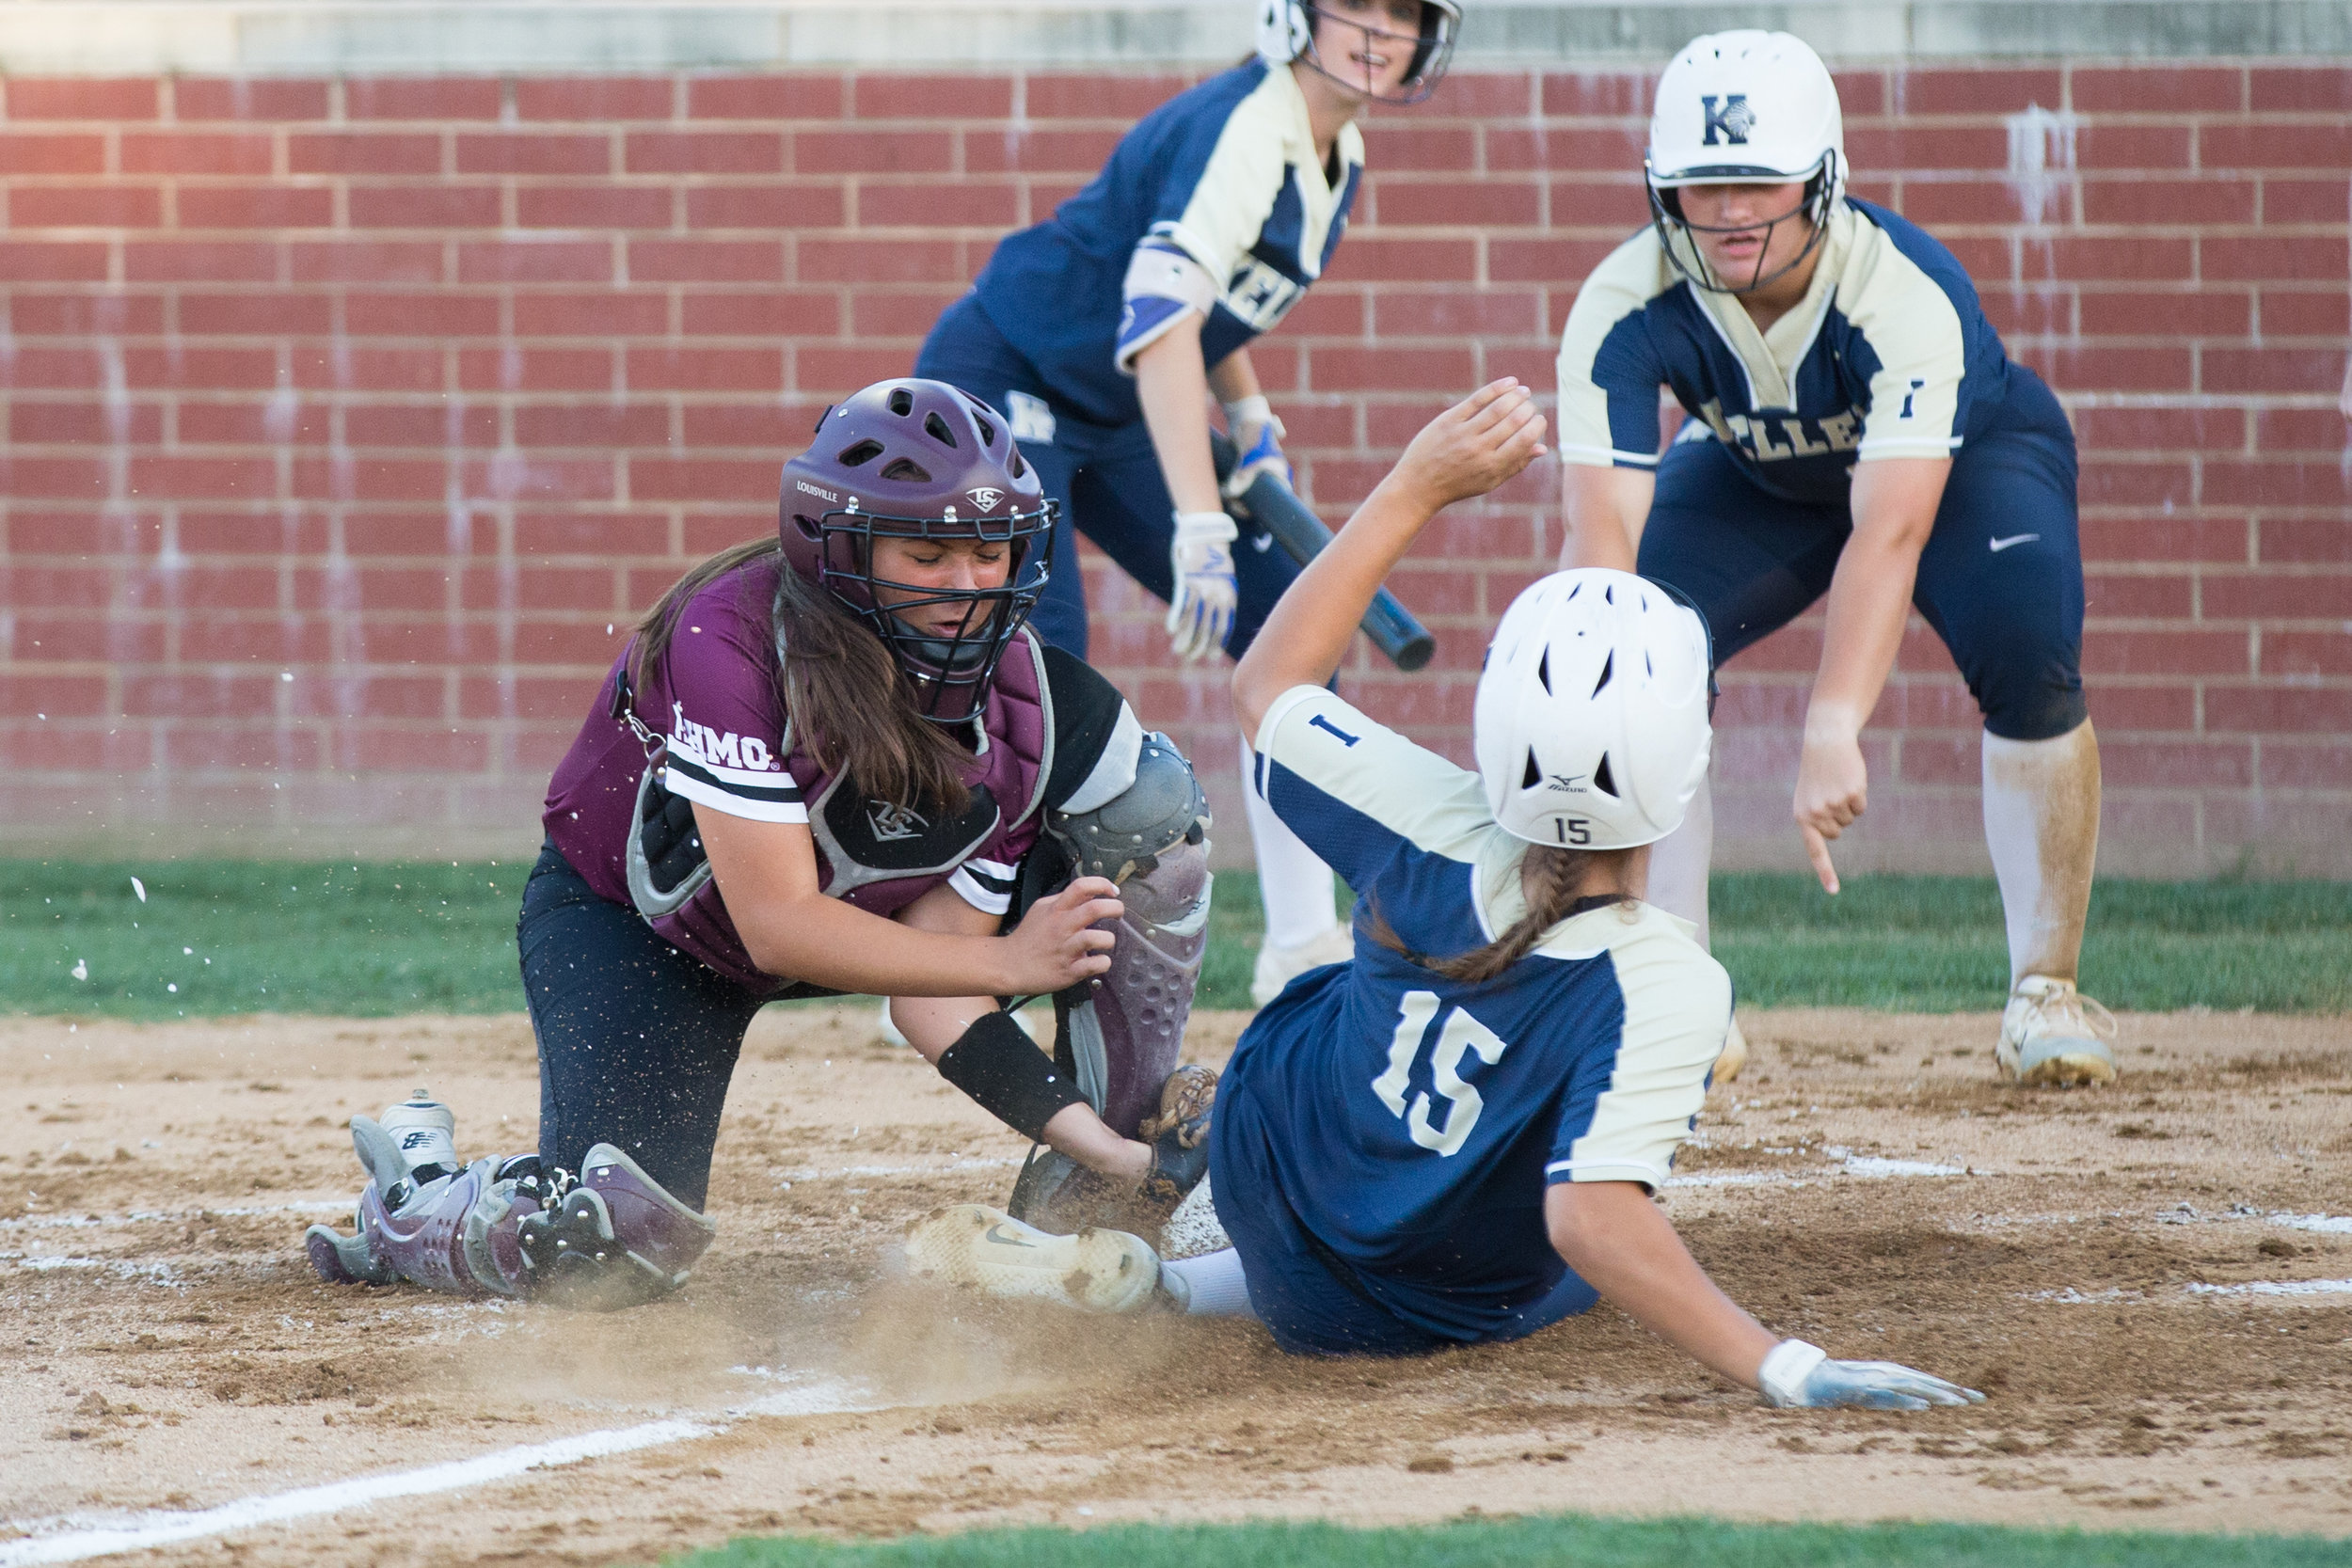 5_18 Wylie Softball-136.jpg